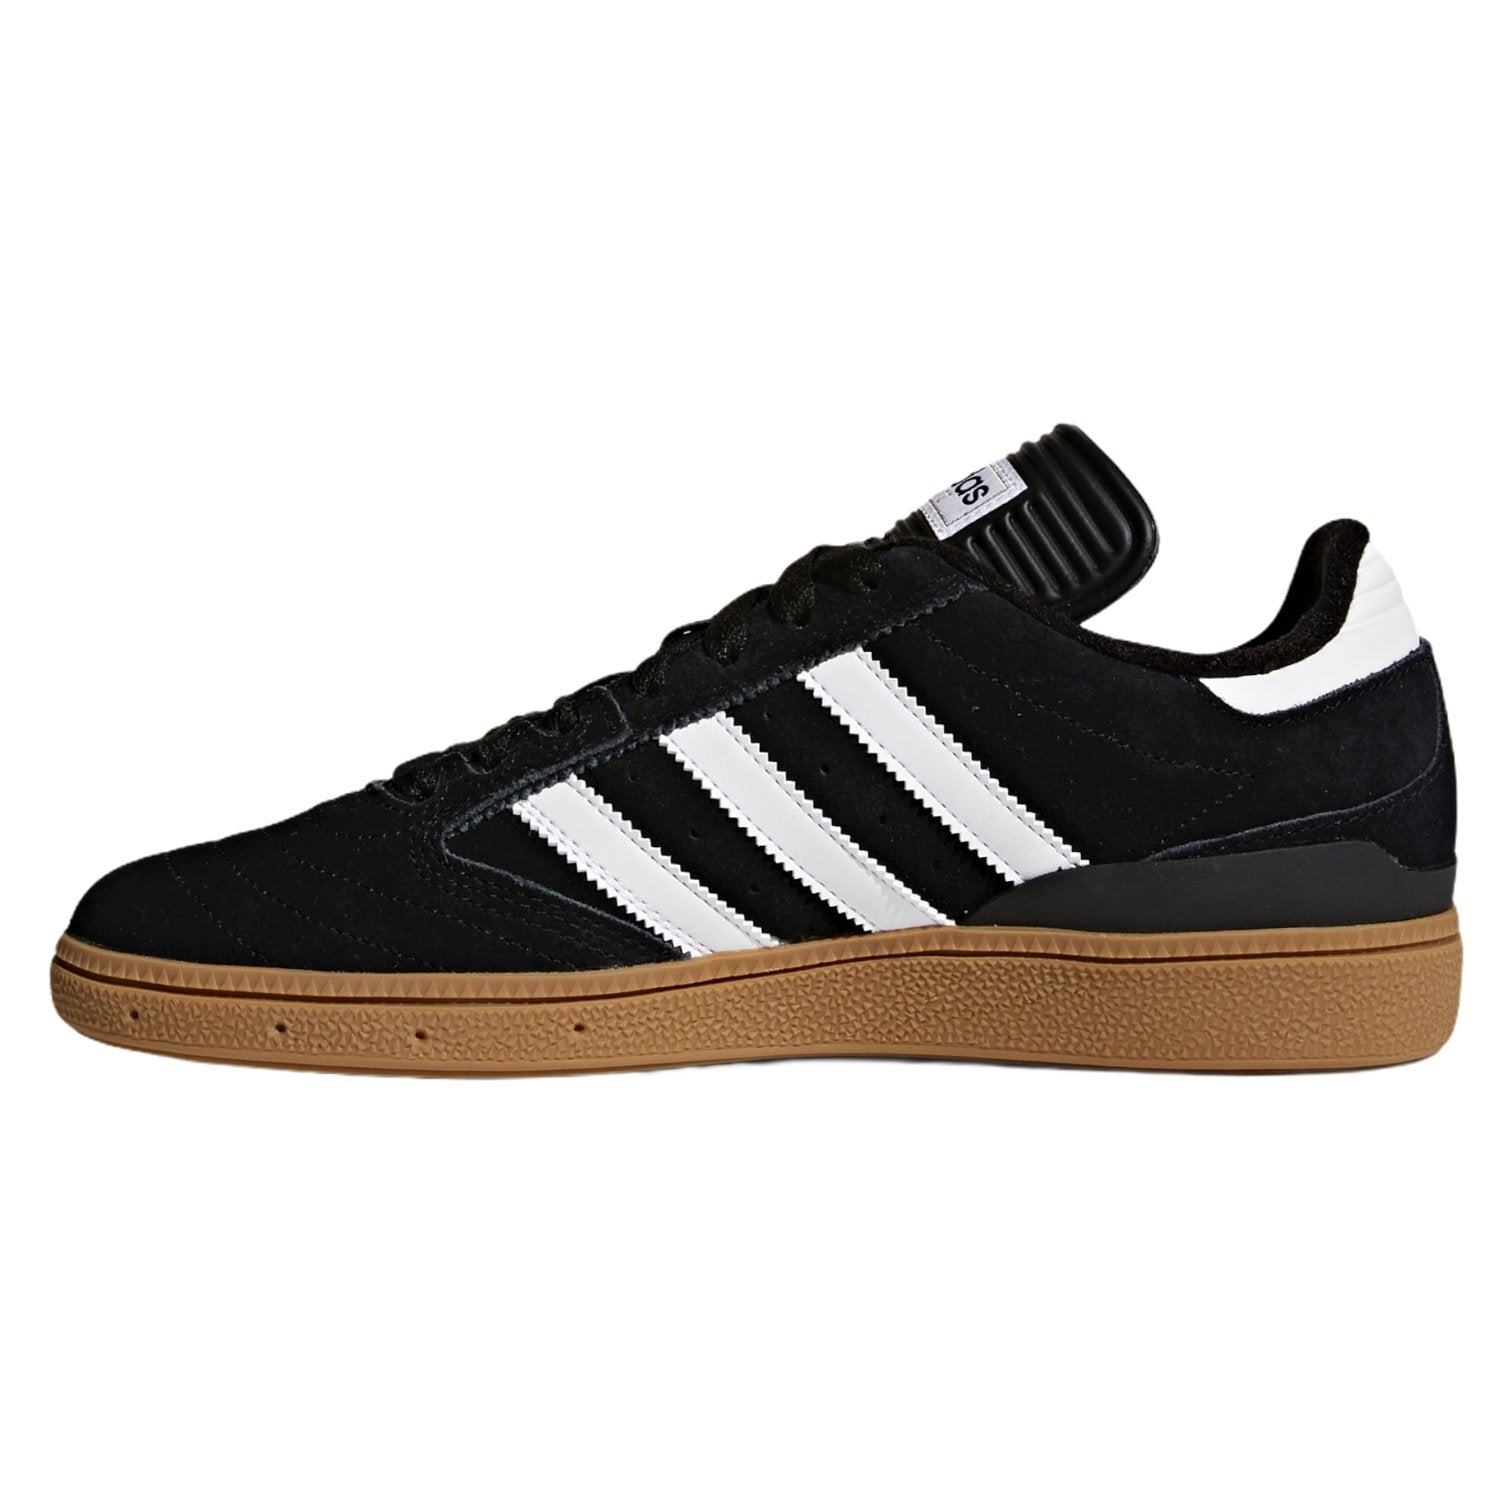 Adidas Busenitz Core Black/Cloud White/Gold Metallic